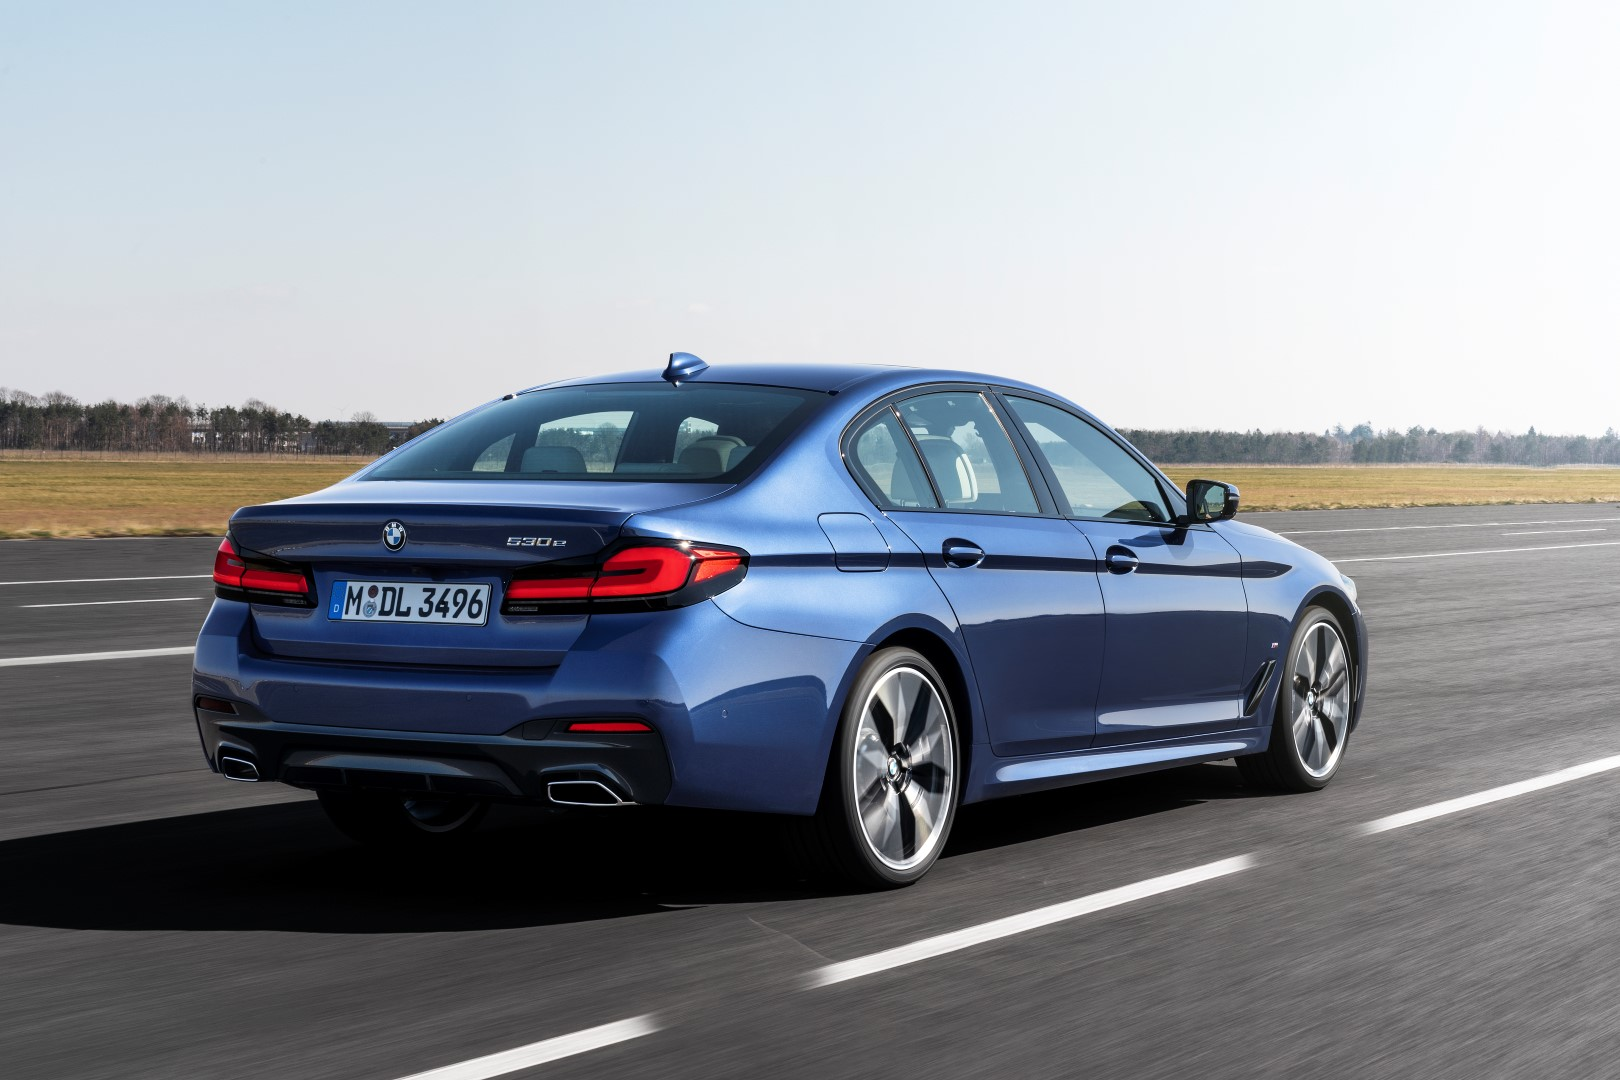 new bmw 5 series rear